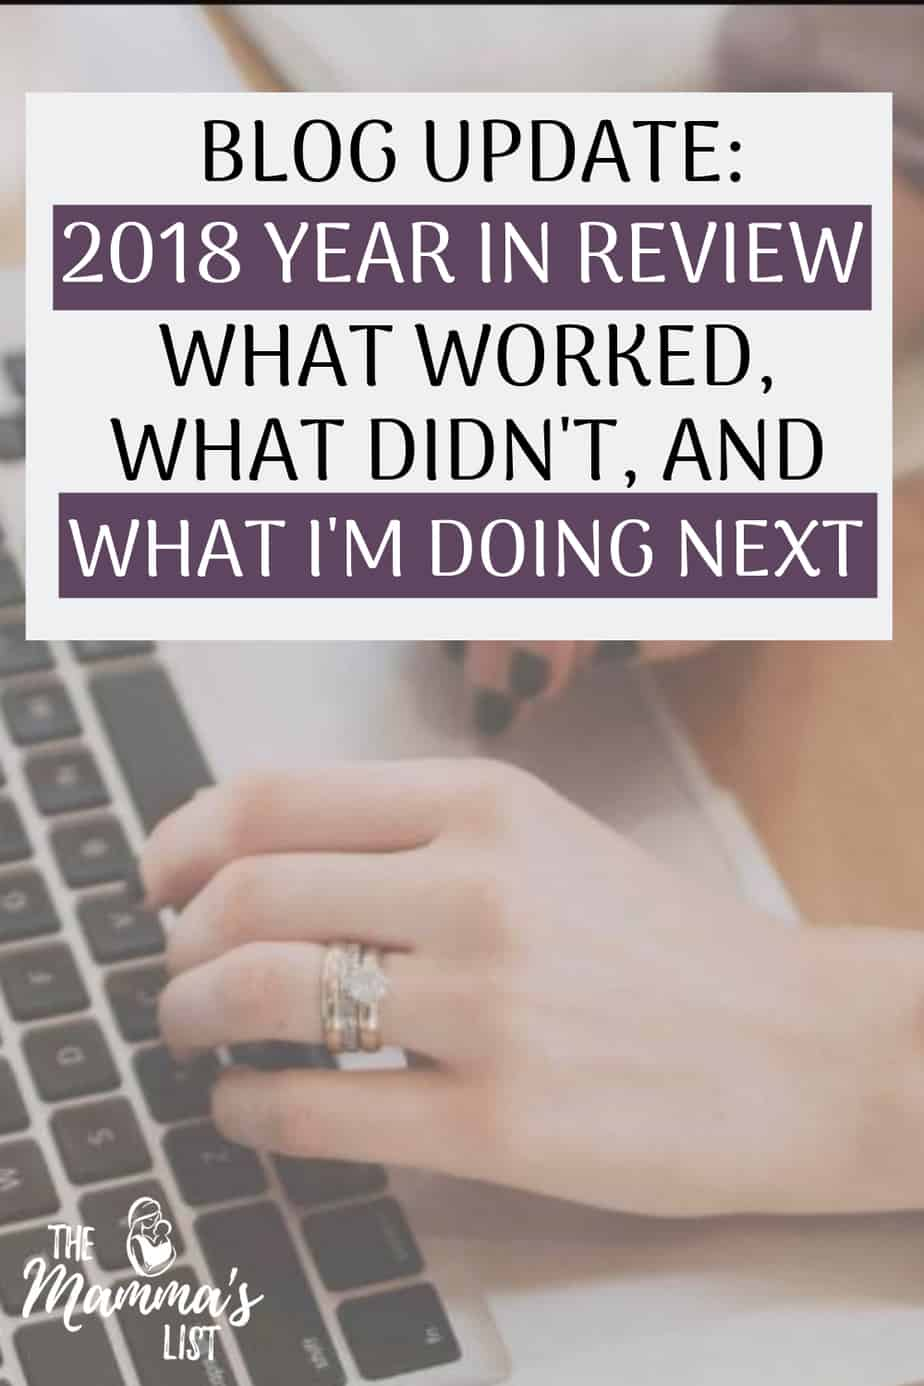 2018 was crazy at The Mamma's List and I wanted to take some time to share with you how we've grown and what we've been working on this year. Here's the full summary of 2018 in review! Read through for more info on how we've grown, what worked, and what was challenging in 2018.